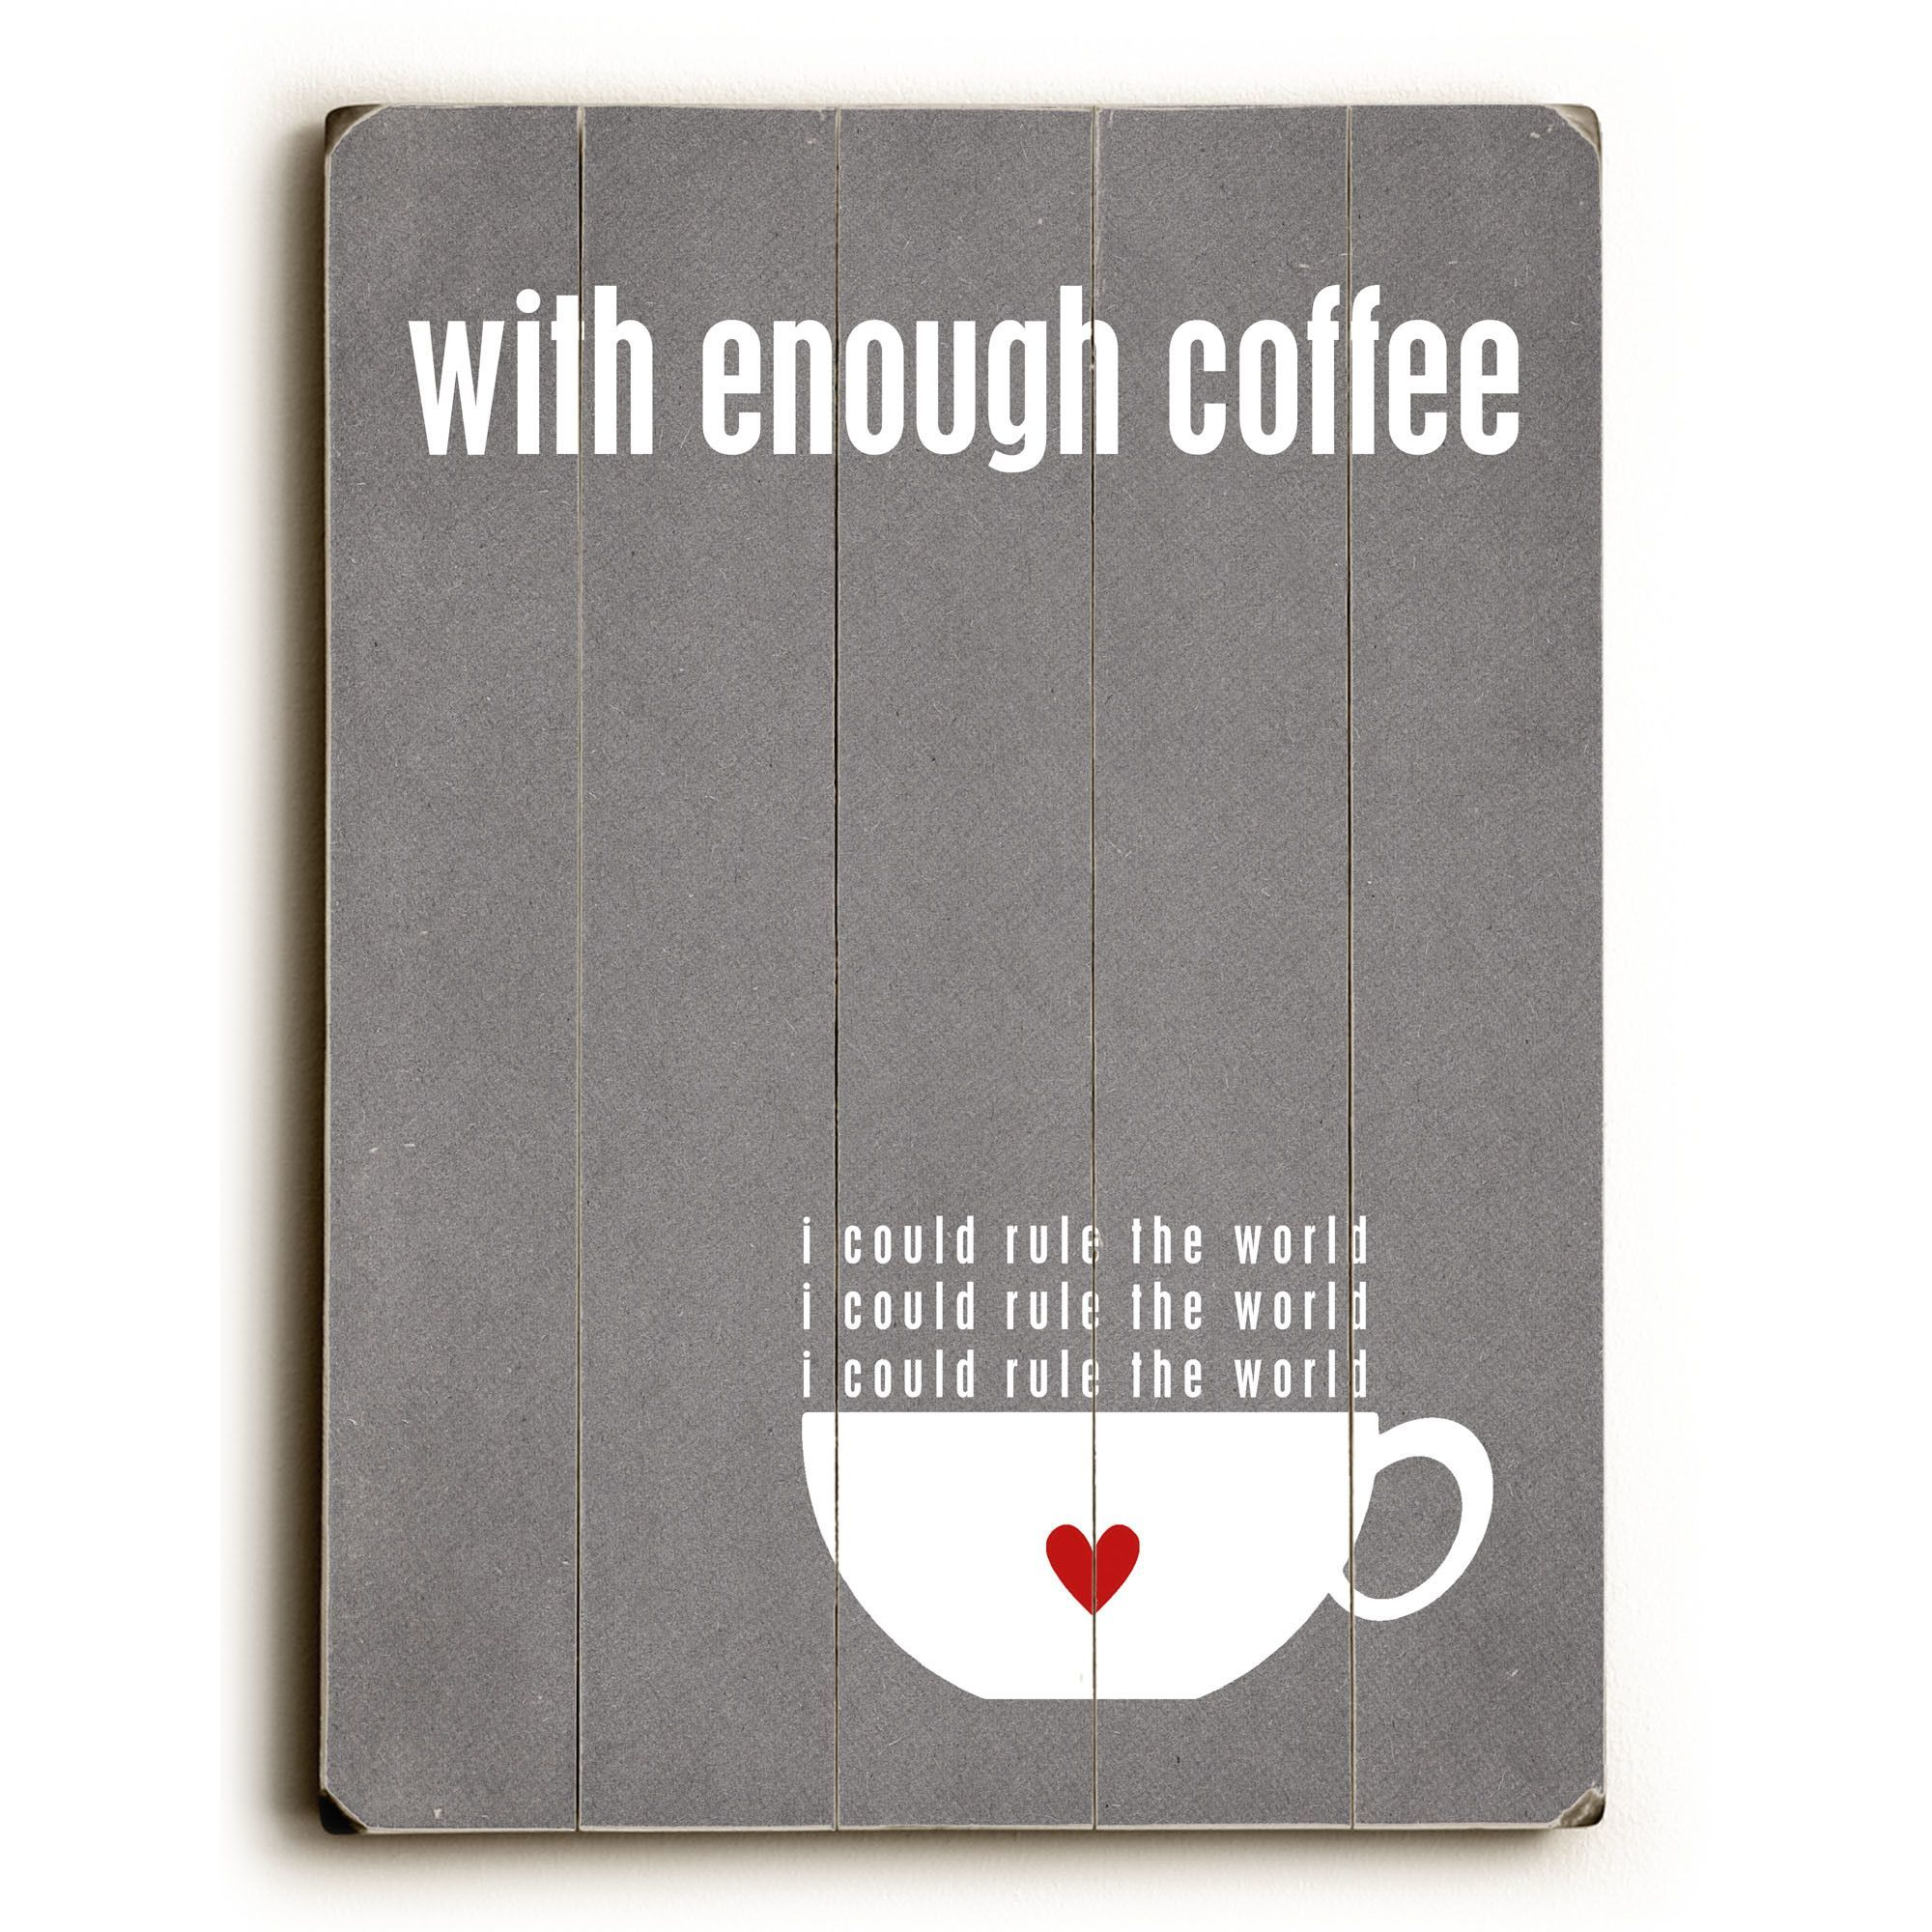 With Enough Coffee By Cheryl Overton Textual Art Plaque Coffee Wall Art Coffee Wall Decor Artehouse